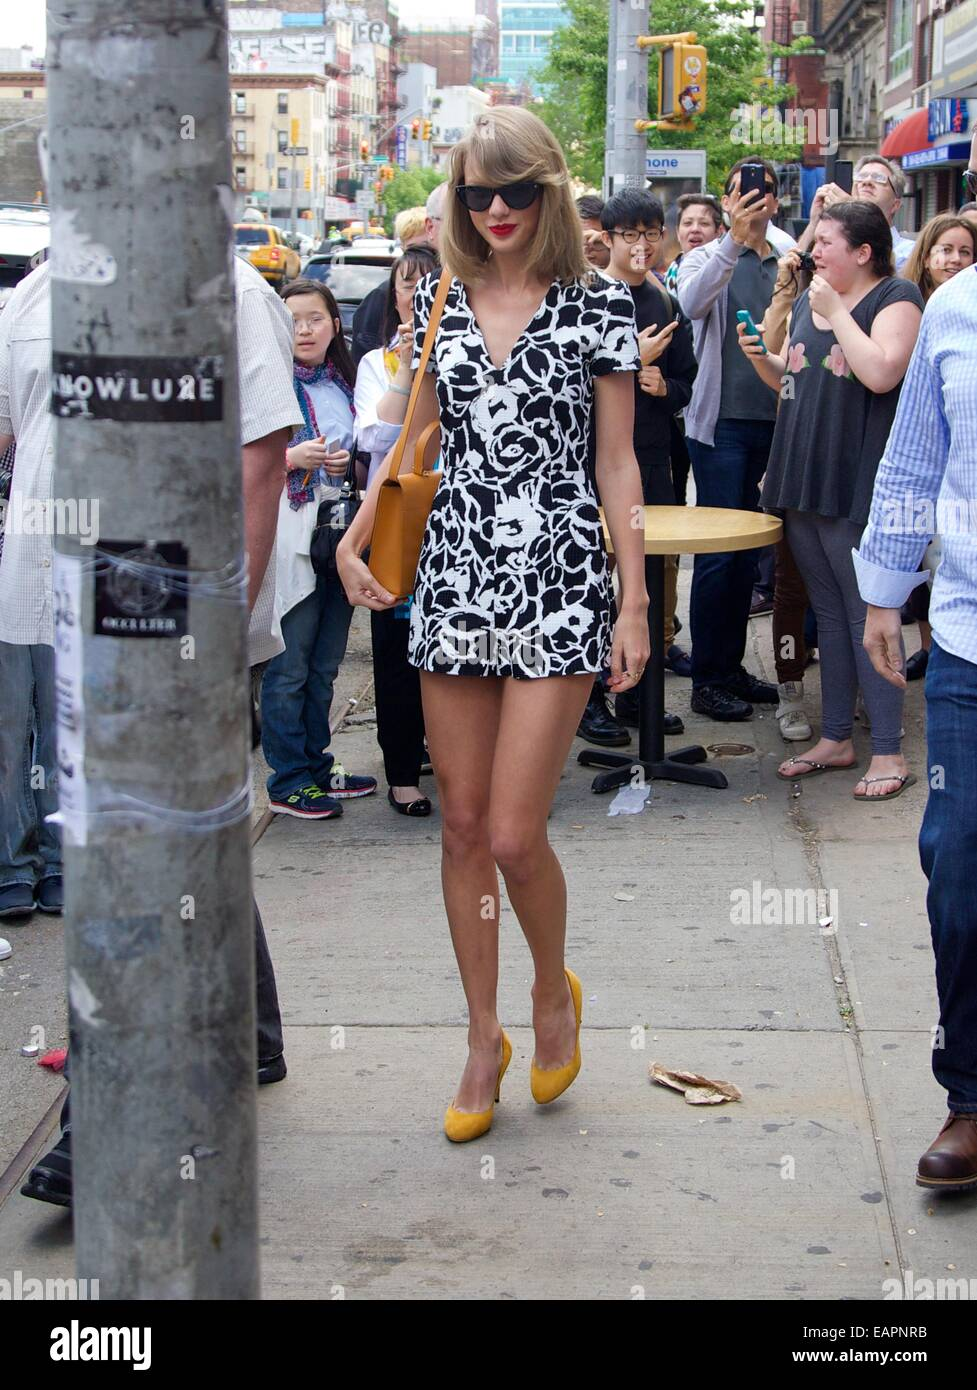 Taylor Swift Spotted On Bowery In New York City Featuring Taylor Stock Photo Alamy